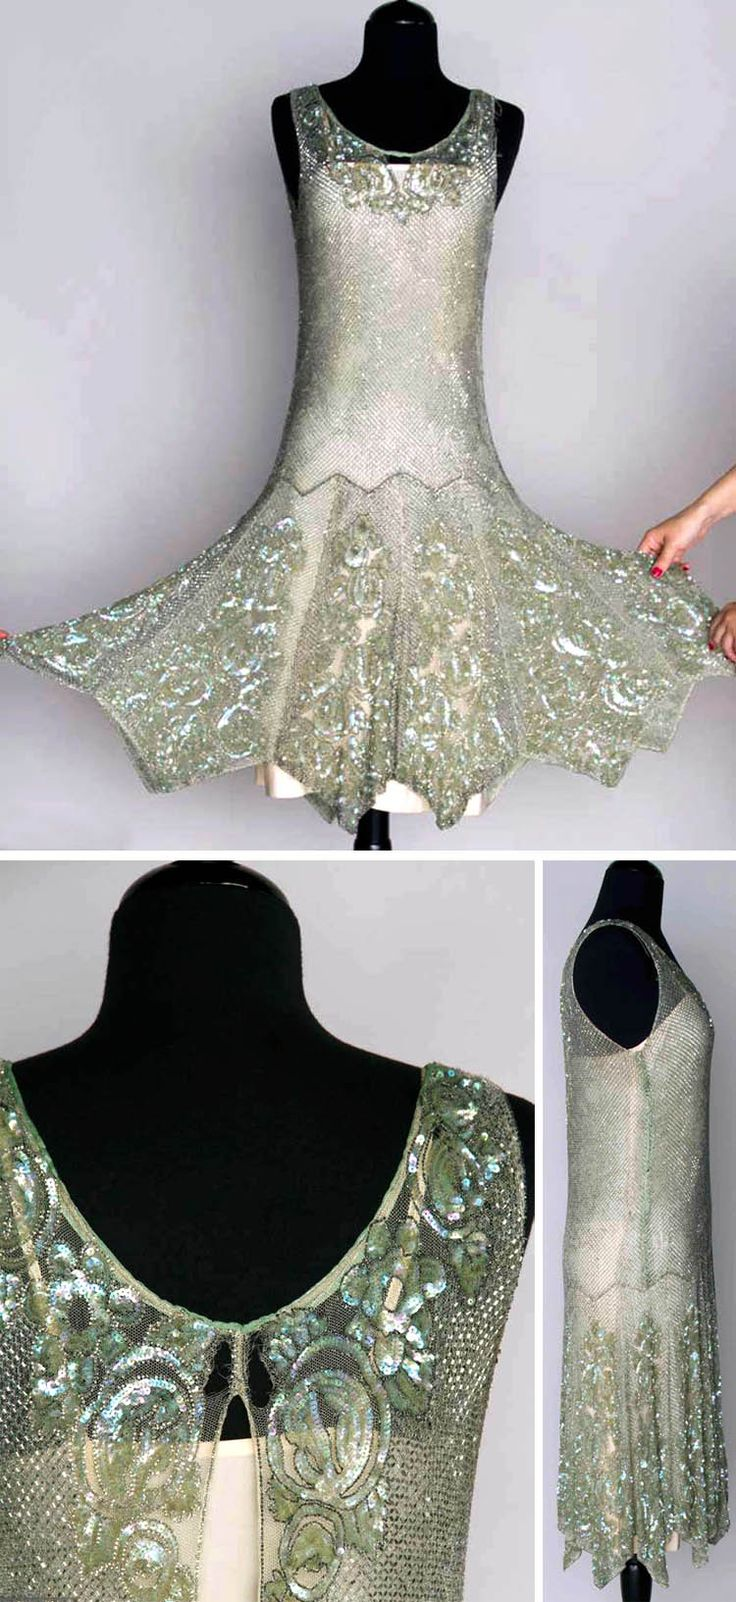 Beaded and sequined dance dress, 1920s. Seafoam green, silver bugle bead lattice pattern, with iridescent sequined roses at neckline and hem. Via Augusta Auctions.